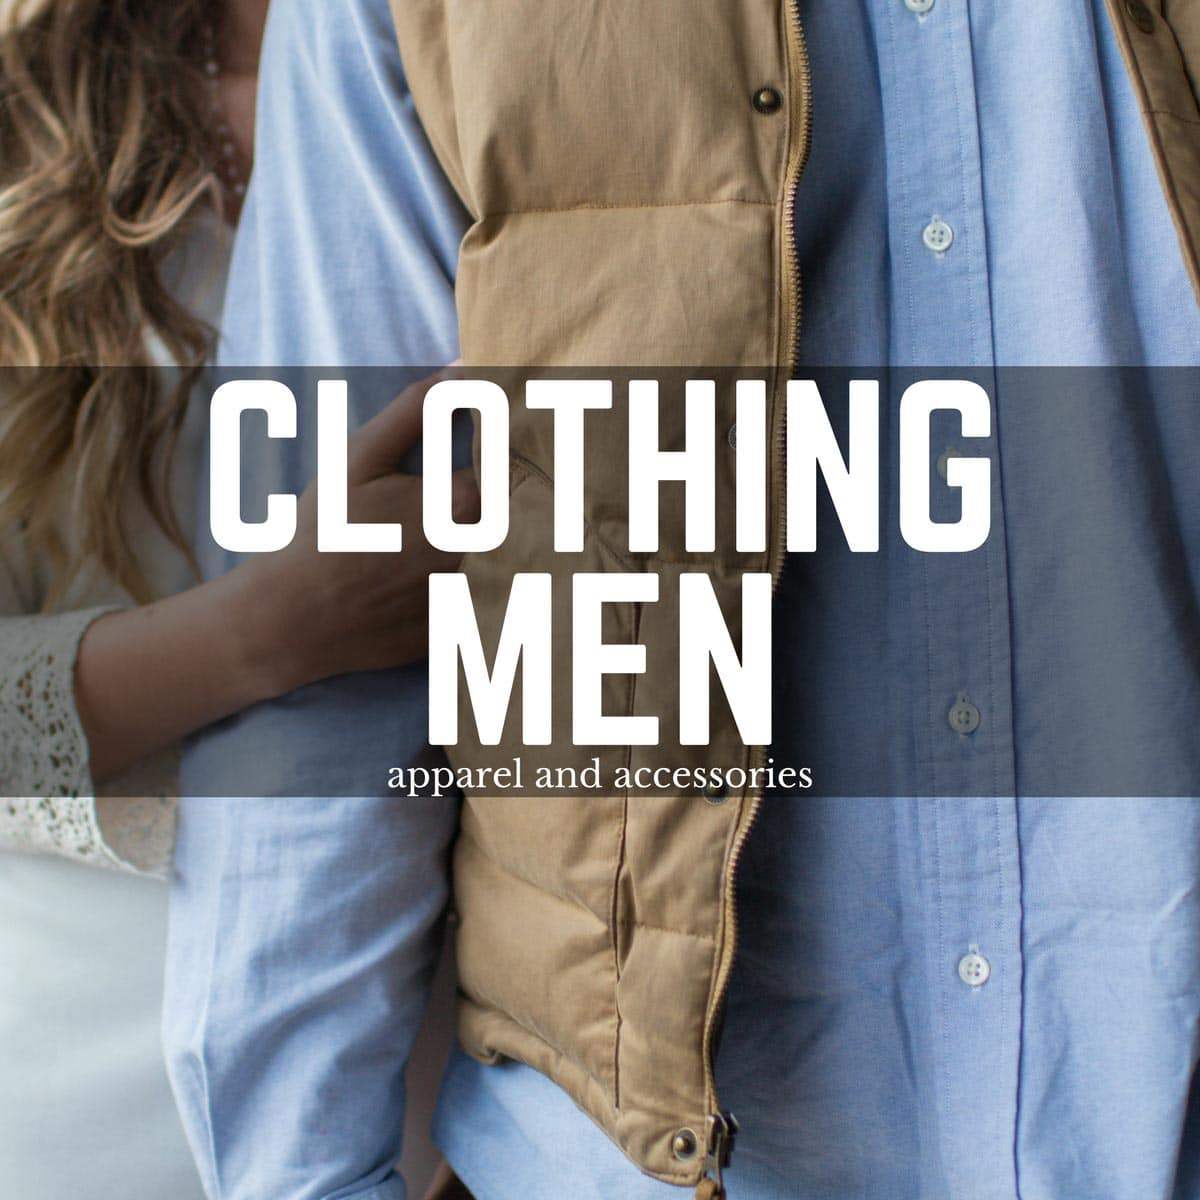 Made in usa Men's clothing, Made in usa Men's jeans, Made in usa Men's shoes, Made in usa Men's underwear, Made in usa Men's ties, Made in usa Men's belts, Made in usa Men's socks, Made in usa Men's wallets, Made in usa Men's bags, american made men's jeans, american made men's belts, american made men's shoes, american made men's wallets, american made men's bags, american made men's socks, american made men's suits, made in usa suits